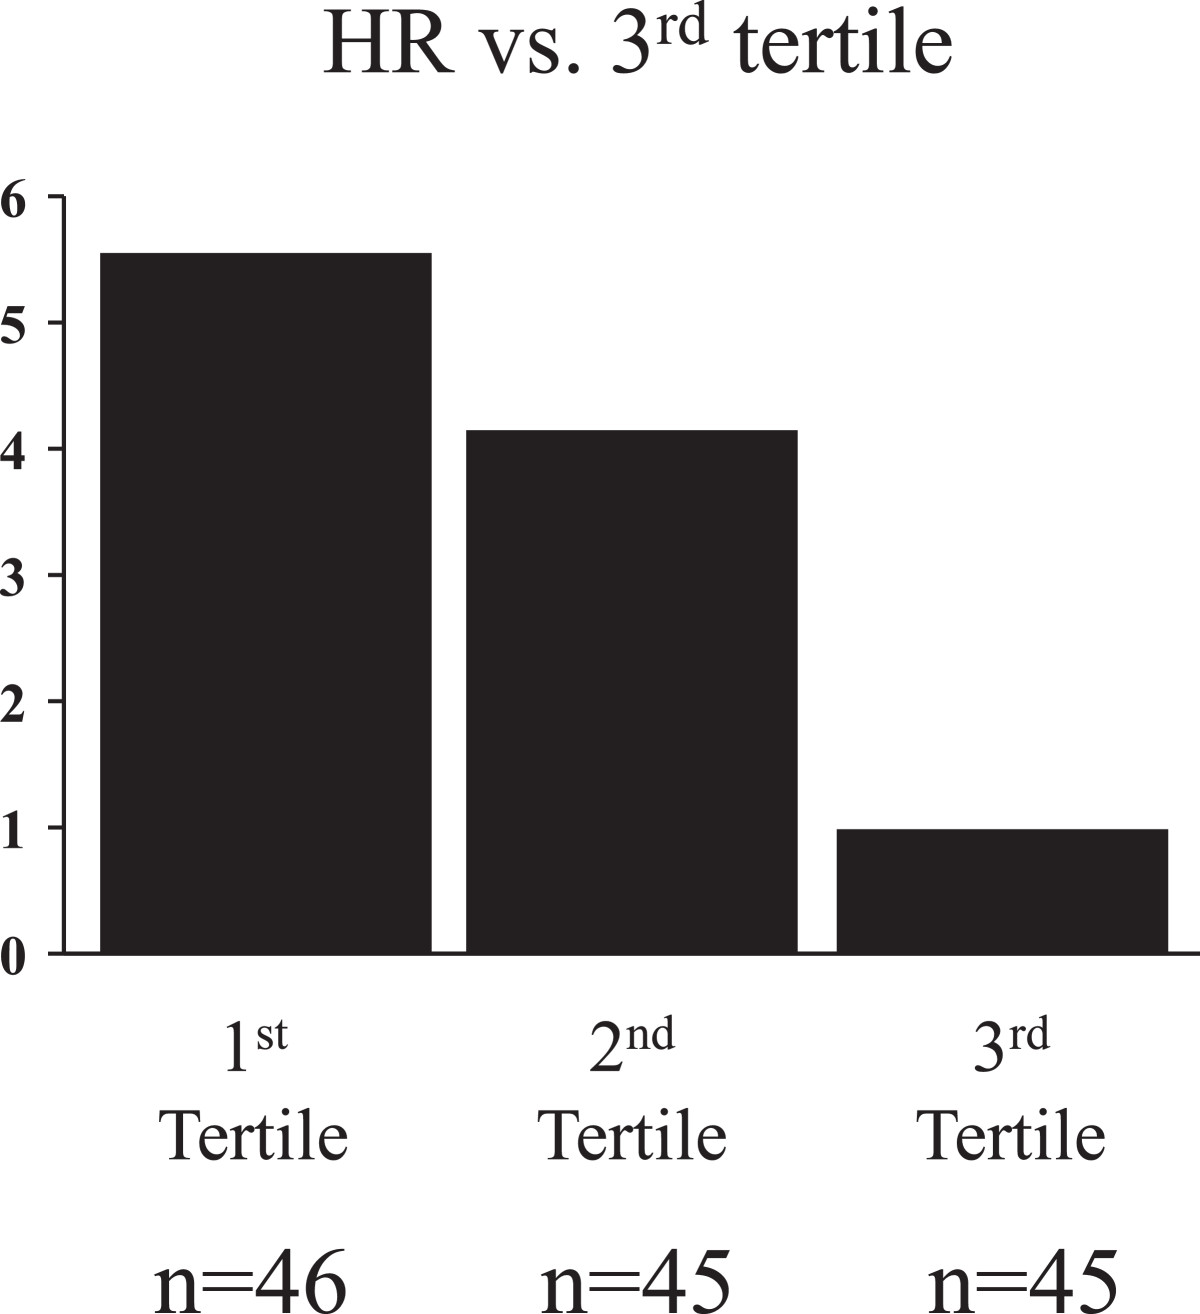 http://static-content.springer.com/image/art%3A10.1186%2F1475-2840-13-84/MediaObjects/12933_2014_Article_832_Fig3_HTML.jpg